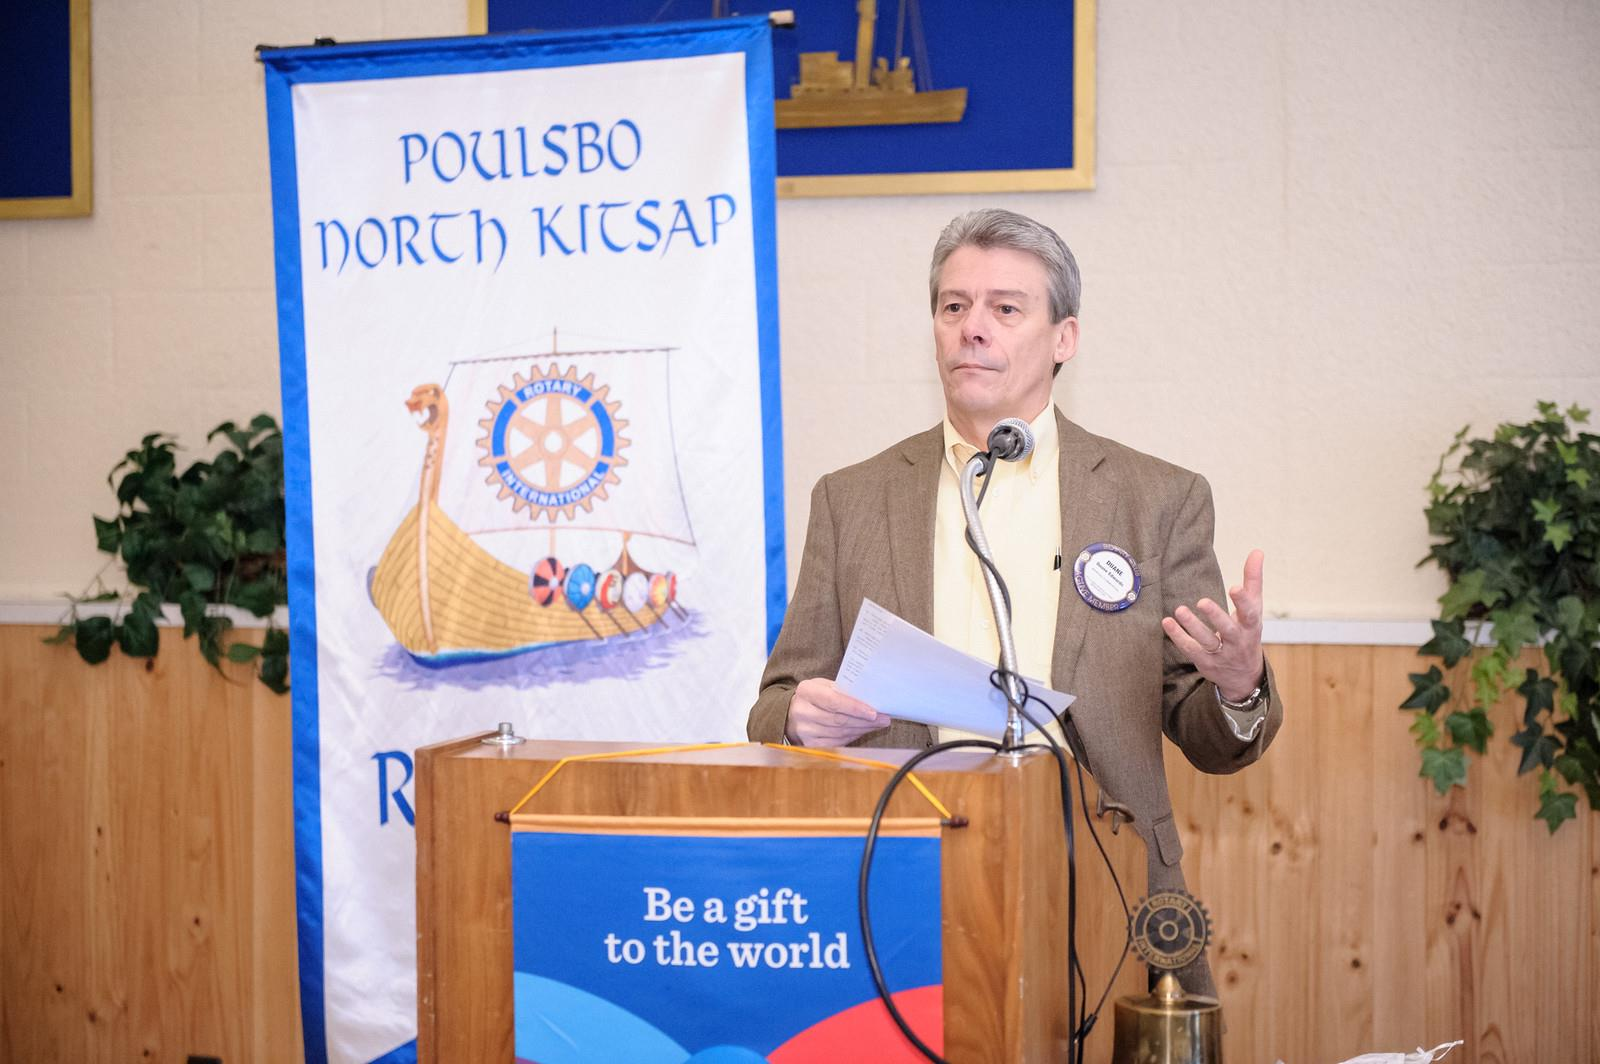 Duane Edwards reports to the club about the Poulsbo North Kitsap Rotary Foundation